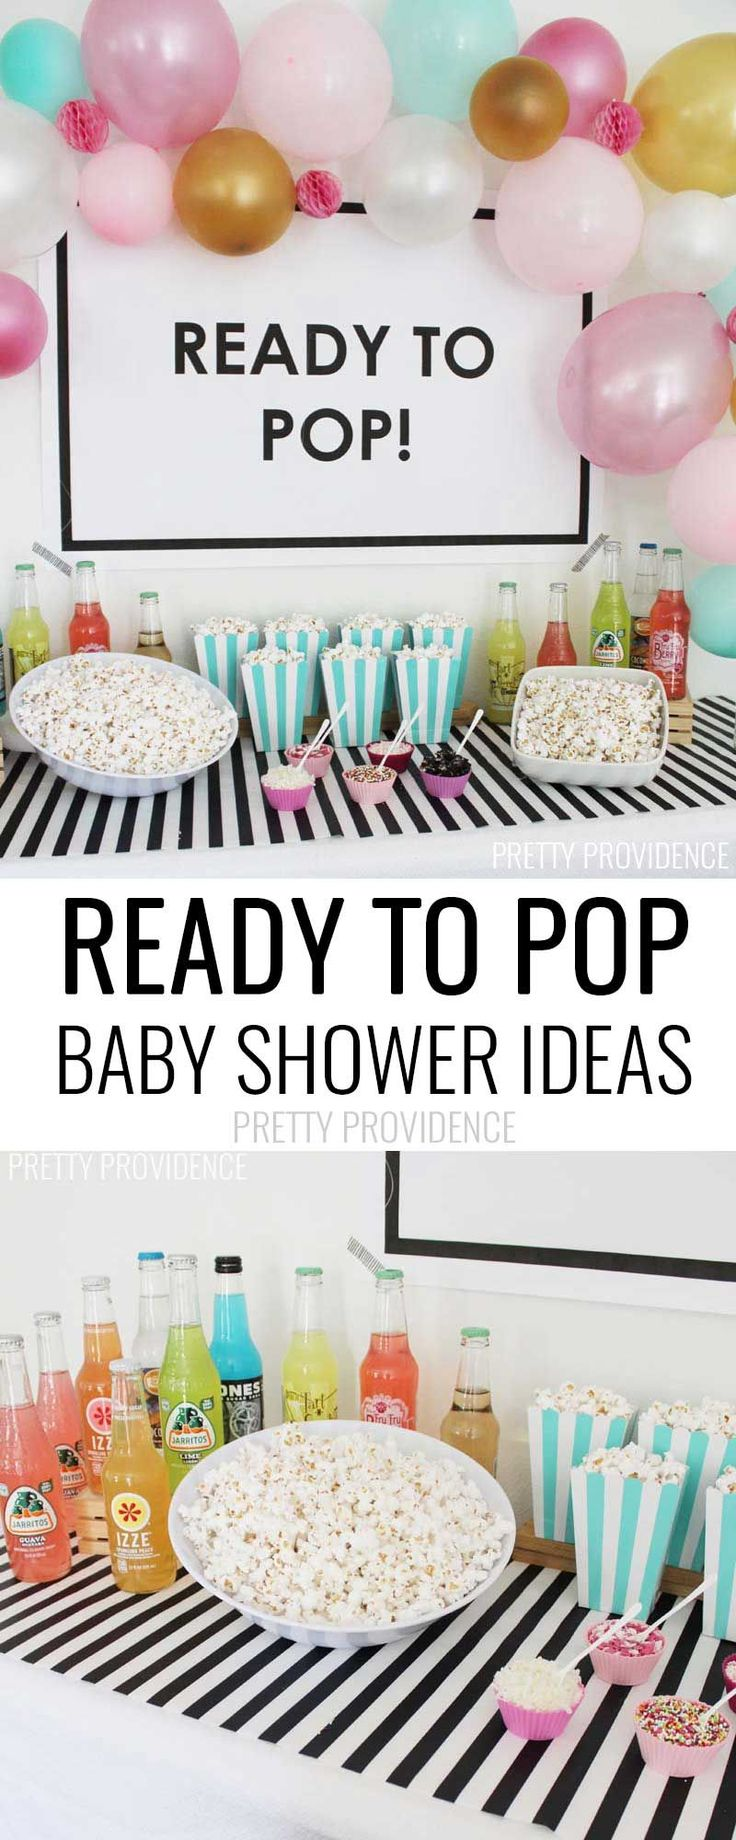 Ready to Pop baby shower theme ideas! LOVE THIS!!!                                                                                                                                                                                 More